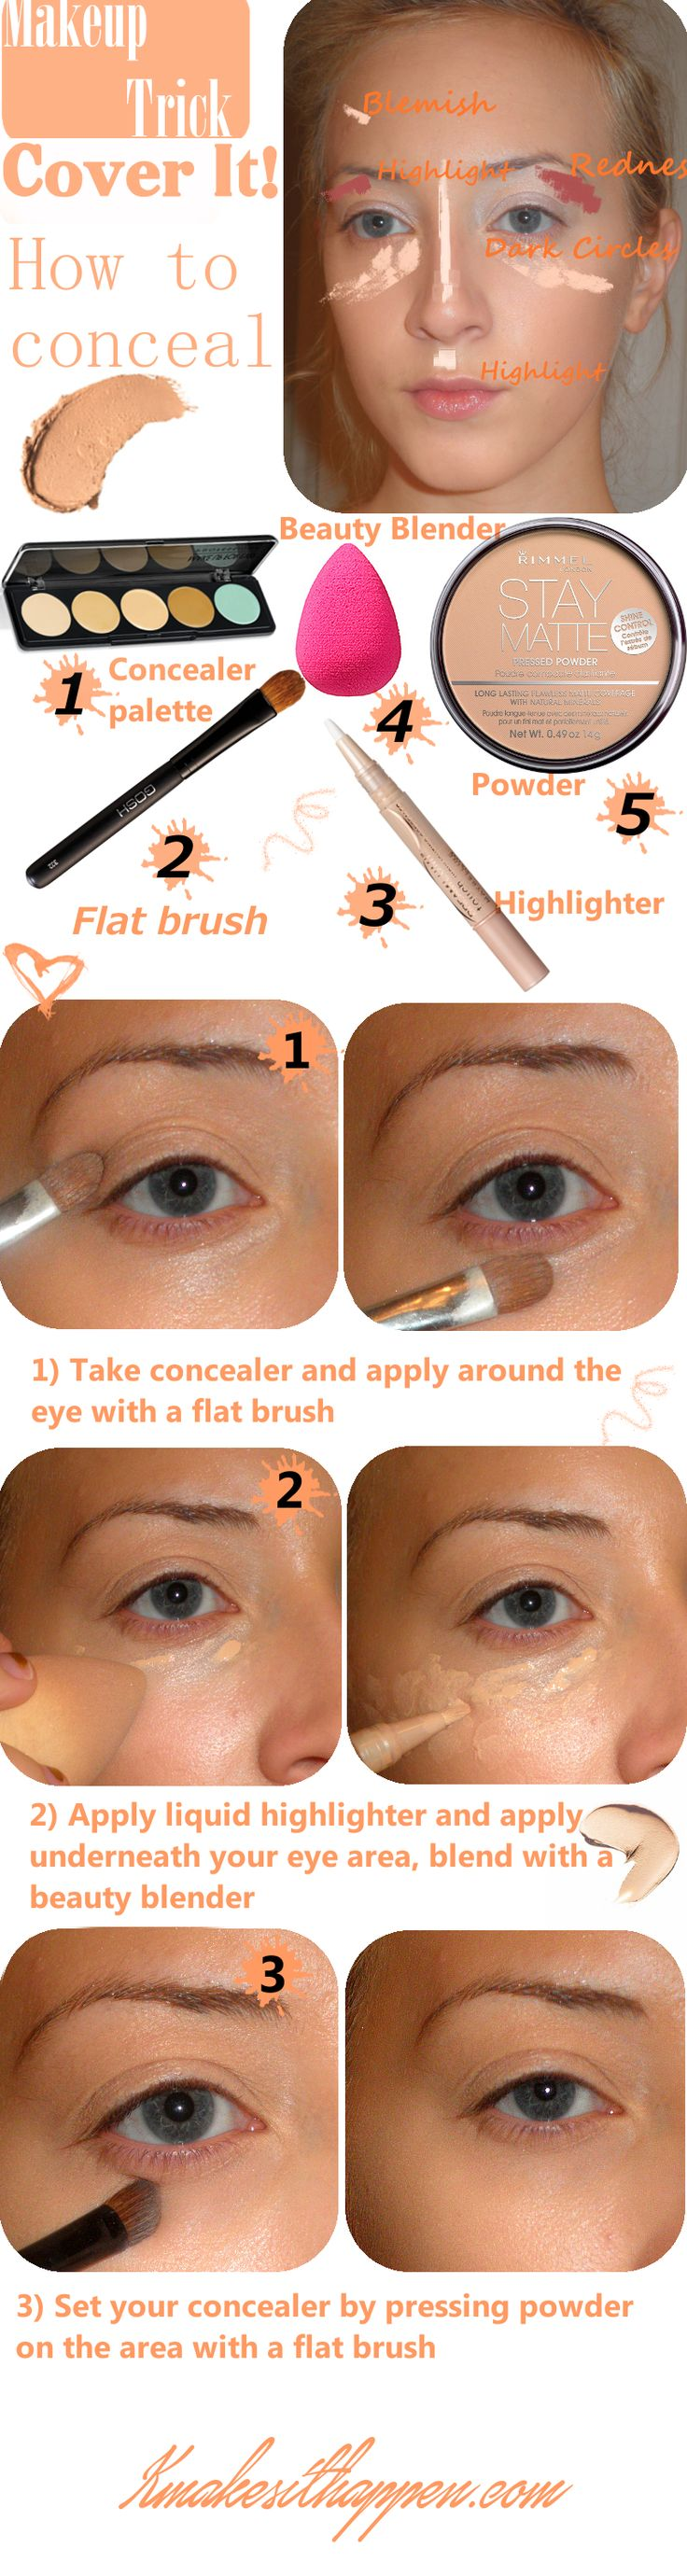 71 best images about Primer, Concealer, Foundation, Contour ...